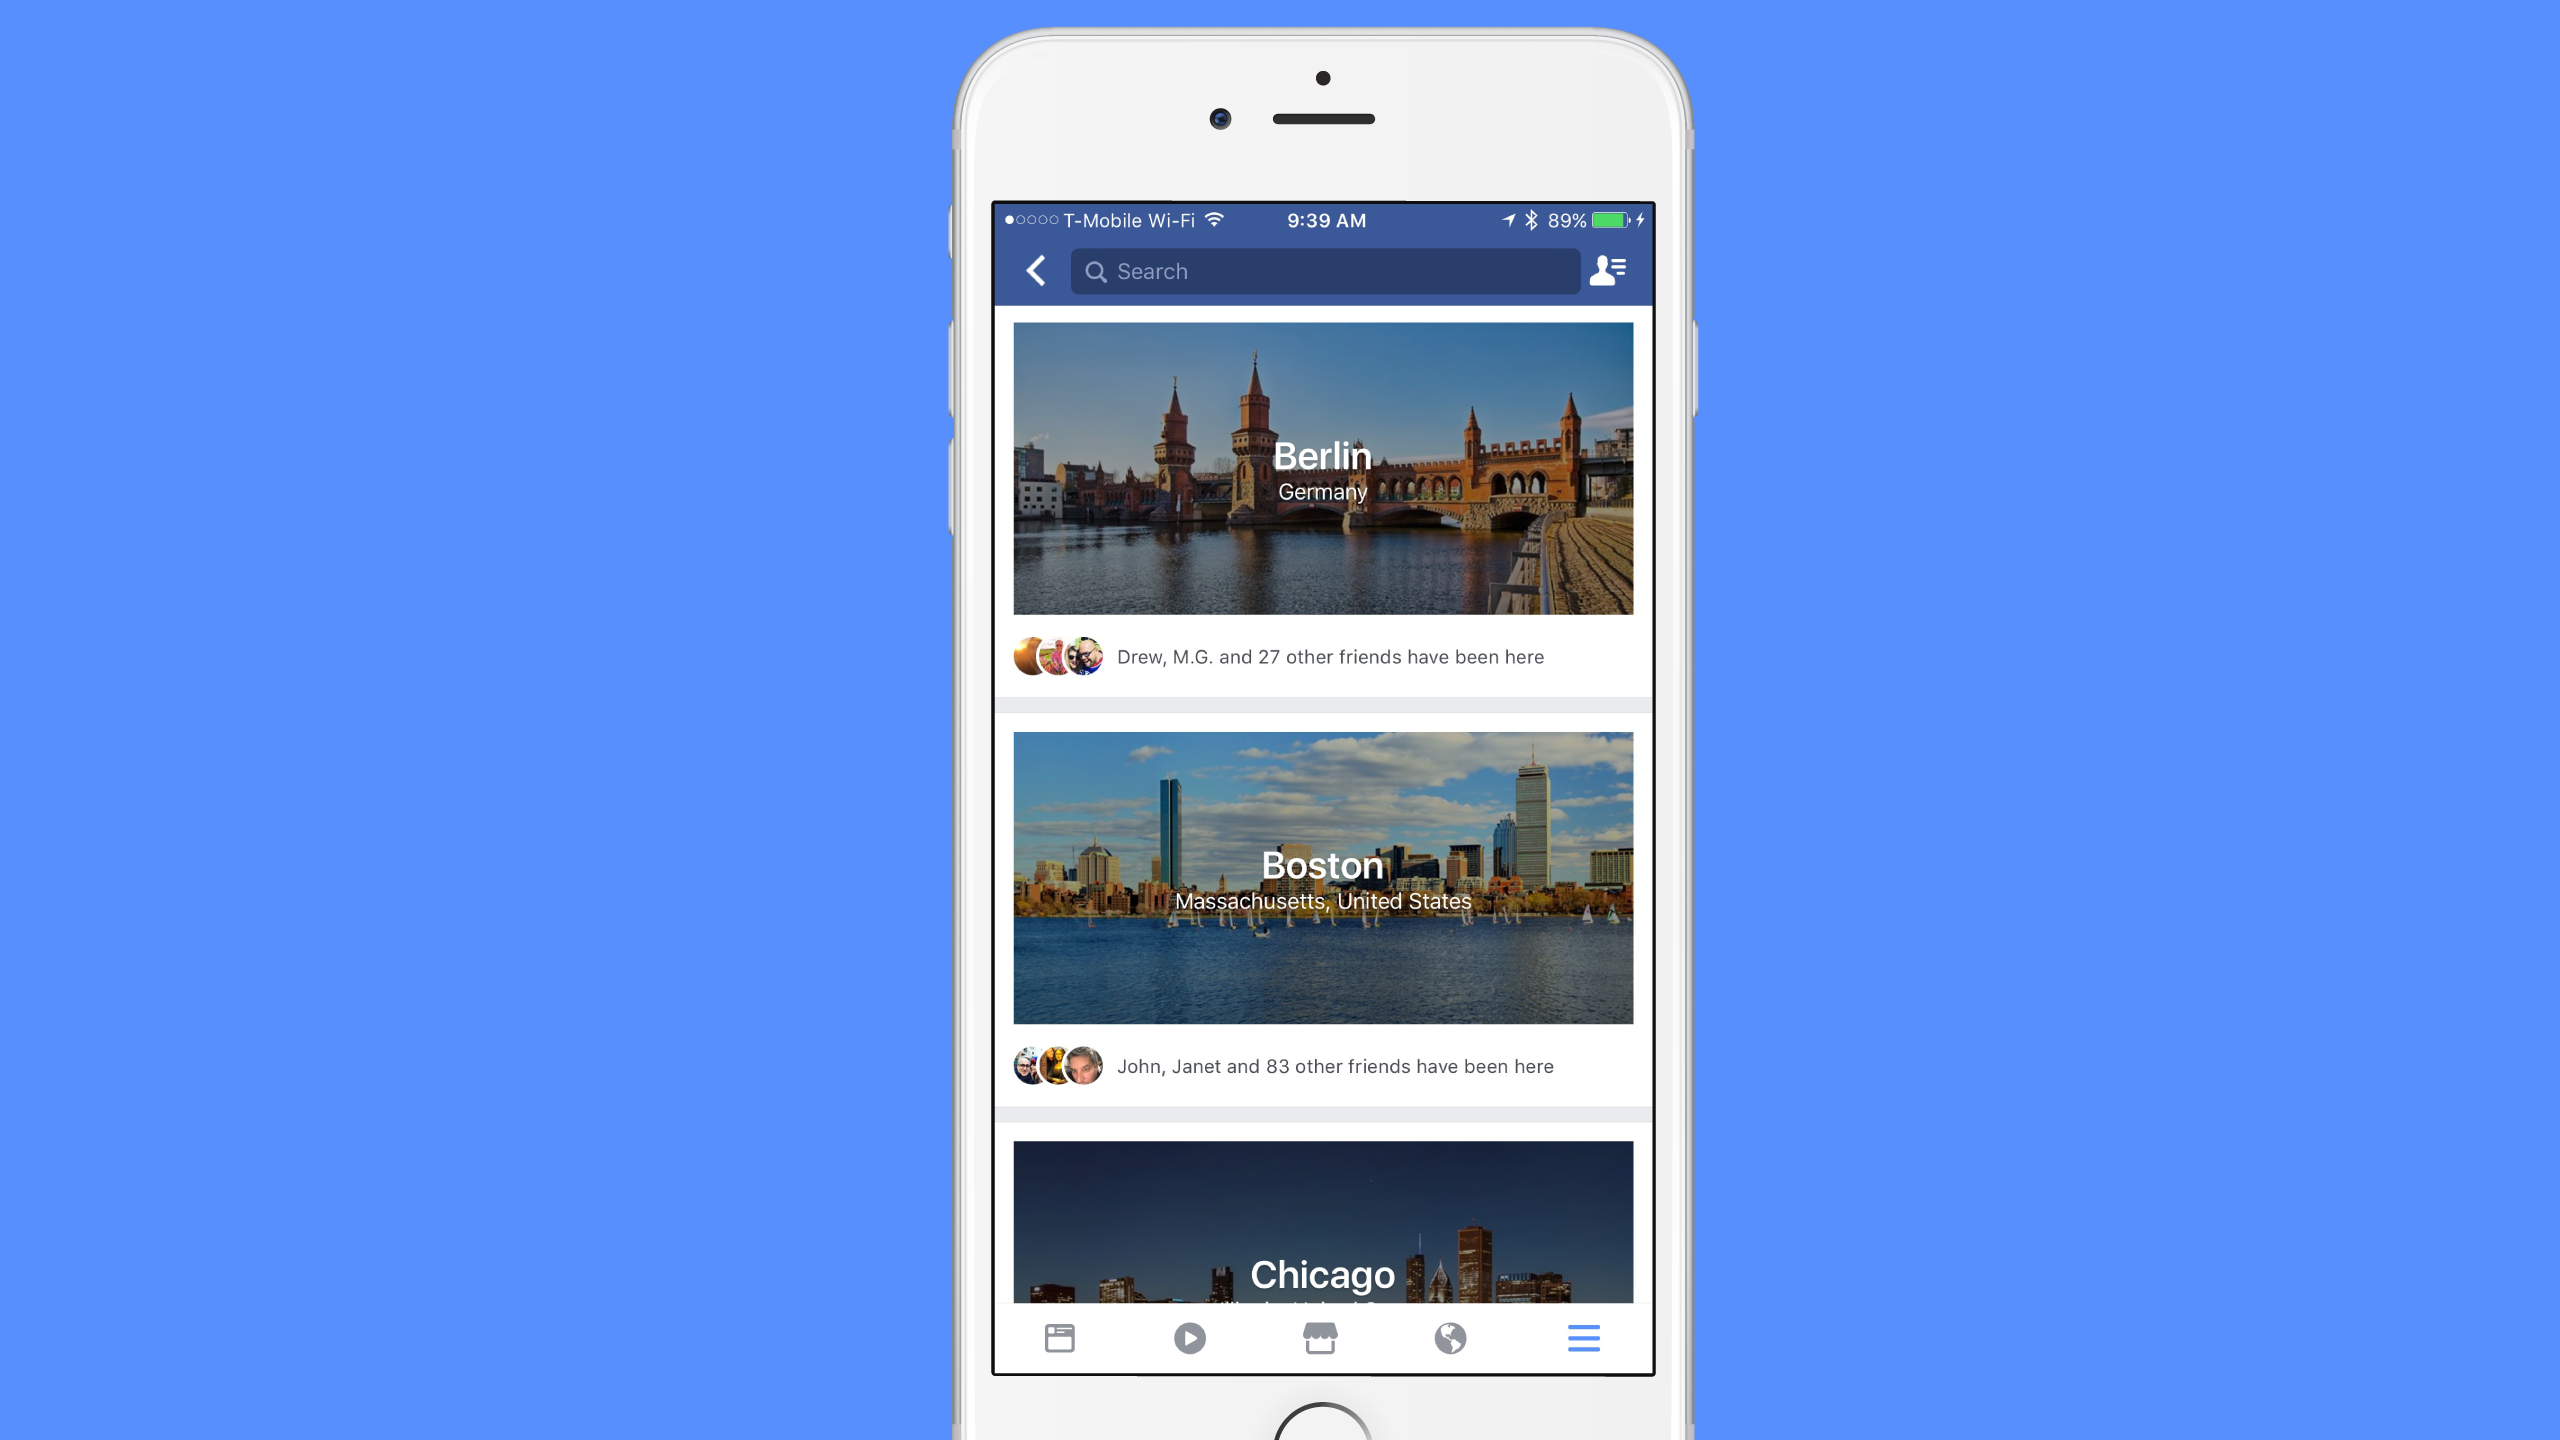 Facebook adds a travel-planning feature called 'City Guides